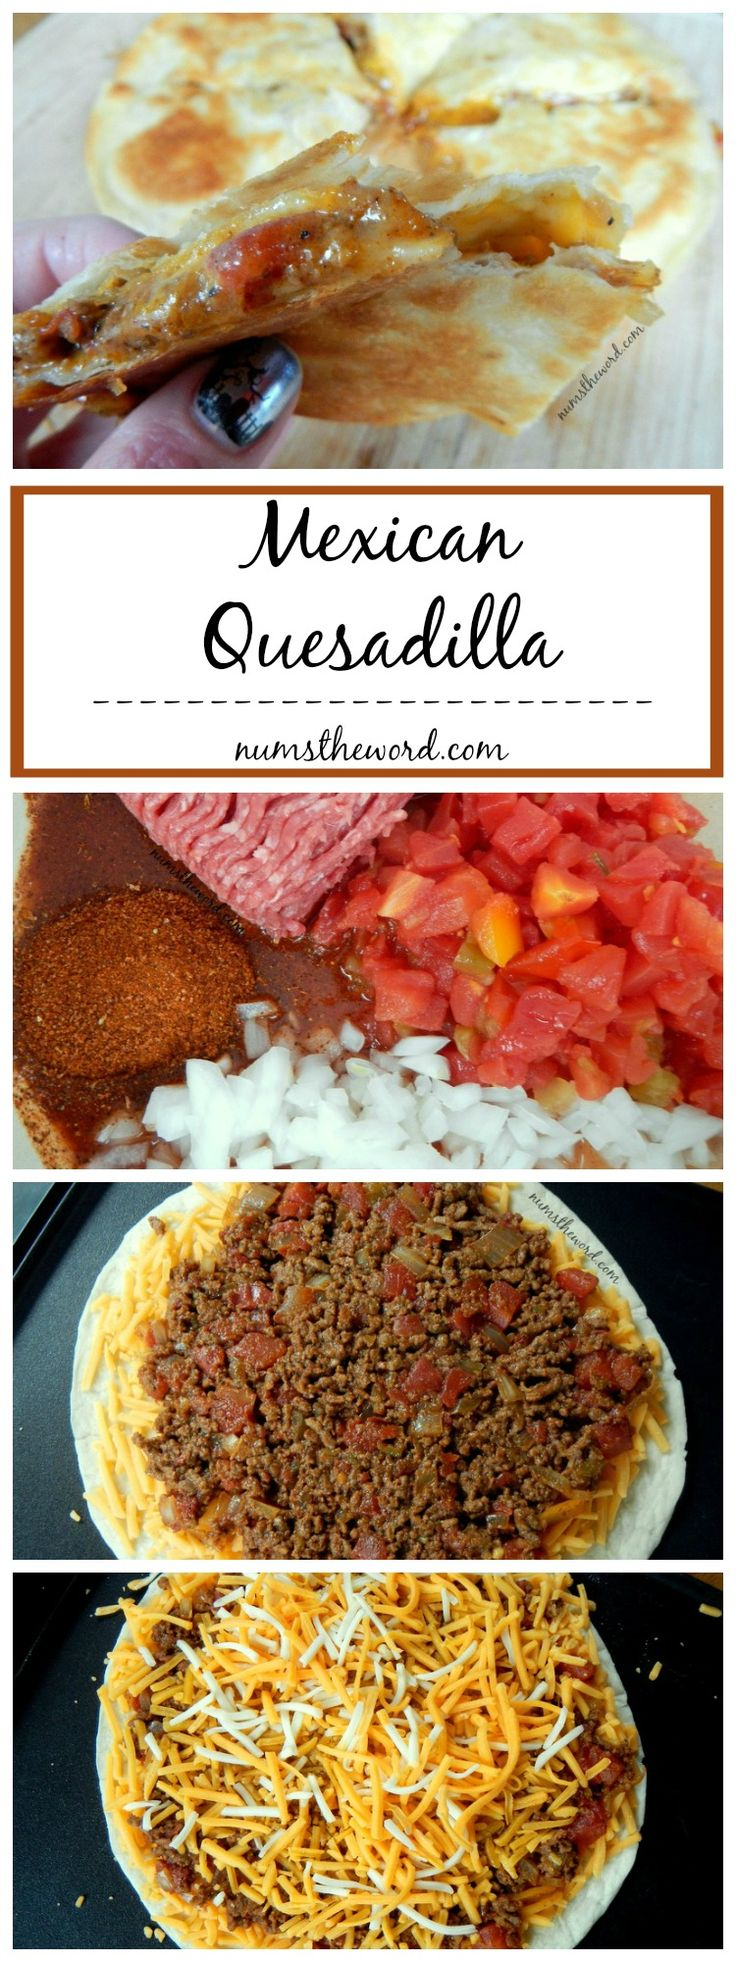 A tasty twist on the classic quesadilla, this Mexican Quesadilla is hearty…